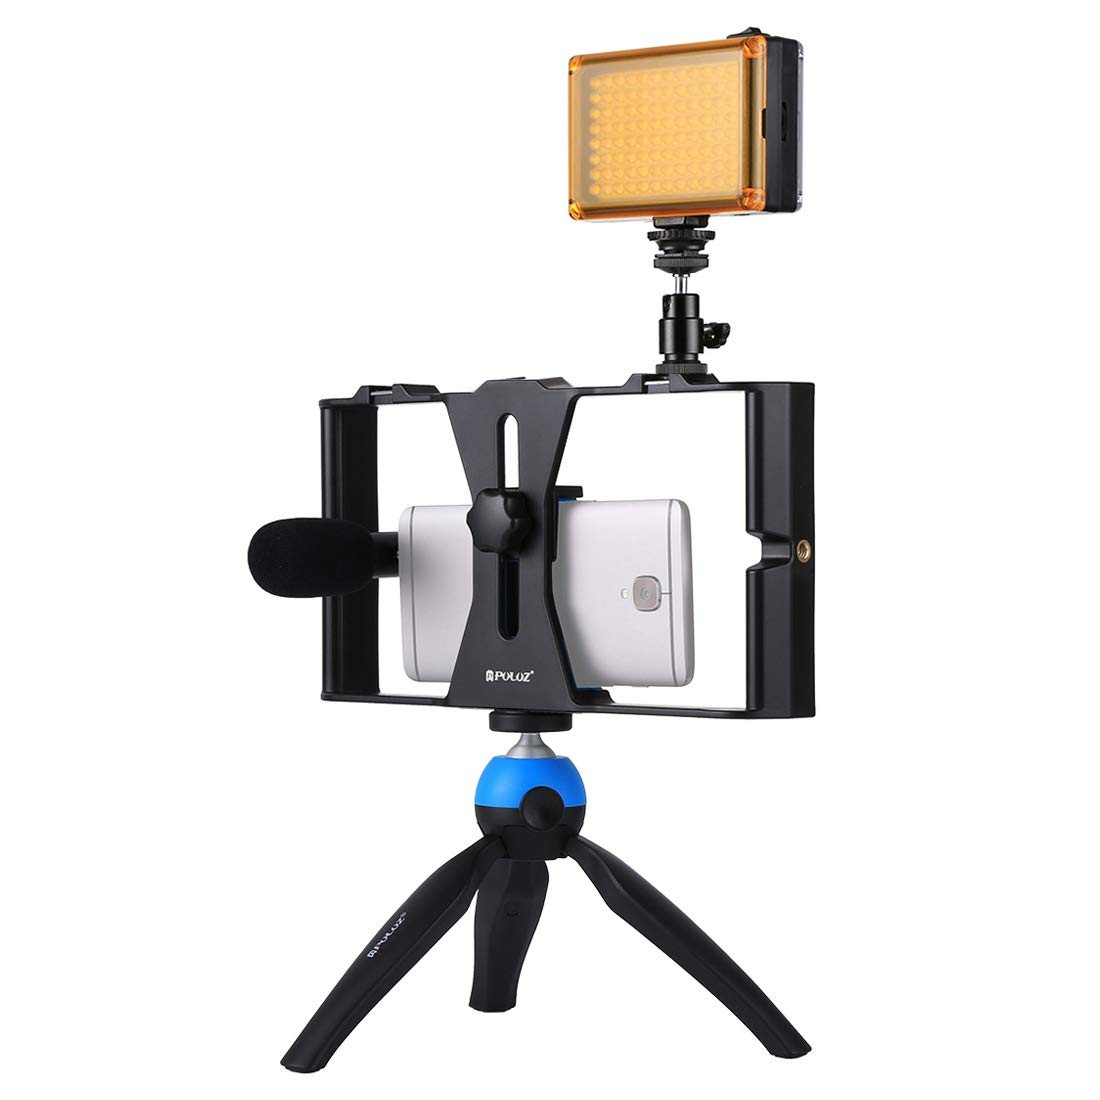 Docooler Smartphone Video Kit, Grip Rig + 96 LED Studio Light + Video Microphone + Mini Tripod Mount with Cold Shoe Tripod Head for Video Shooting Live Broadcast for iPhone Samsung Galaxy Huawei